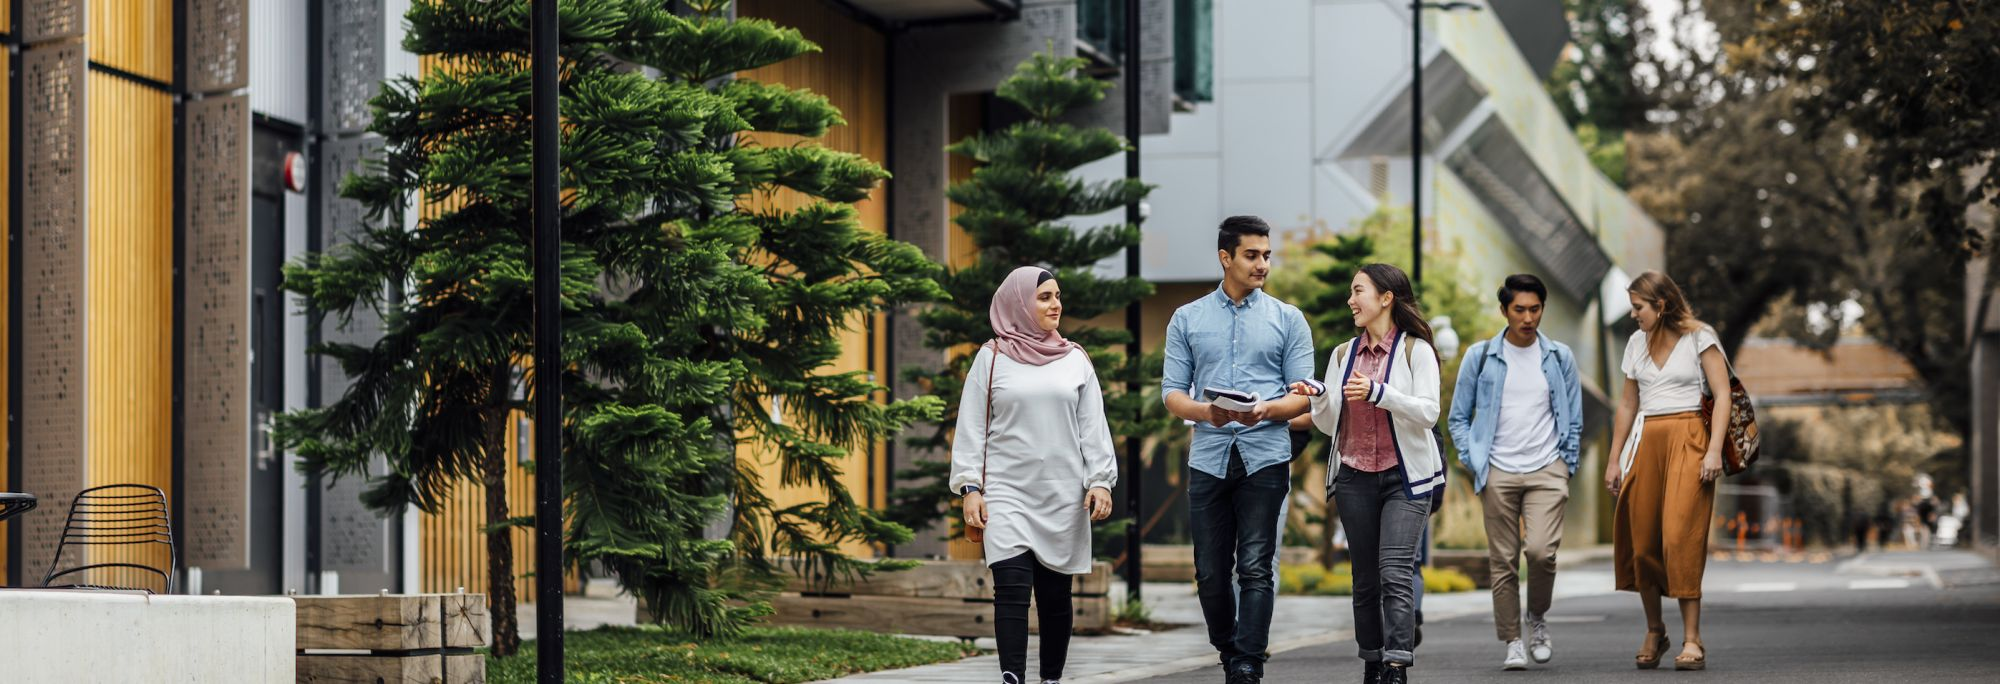 Groups of students walking on Melbourne University campus